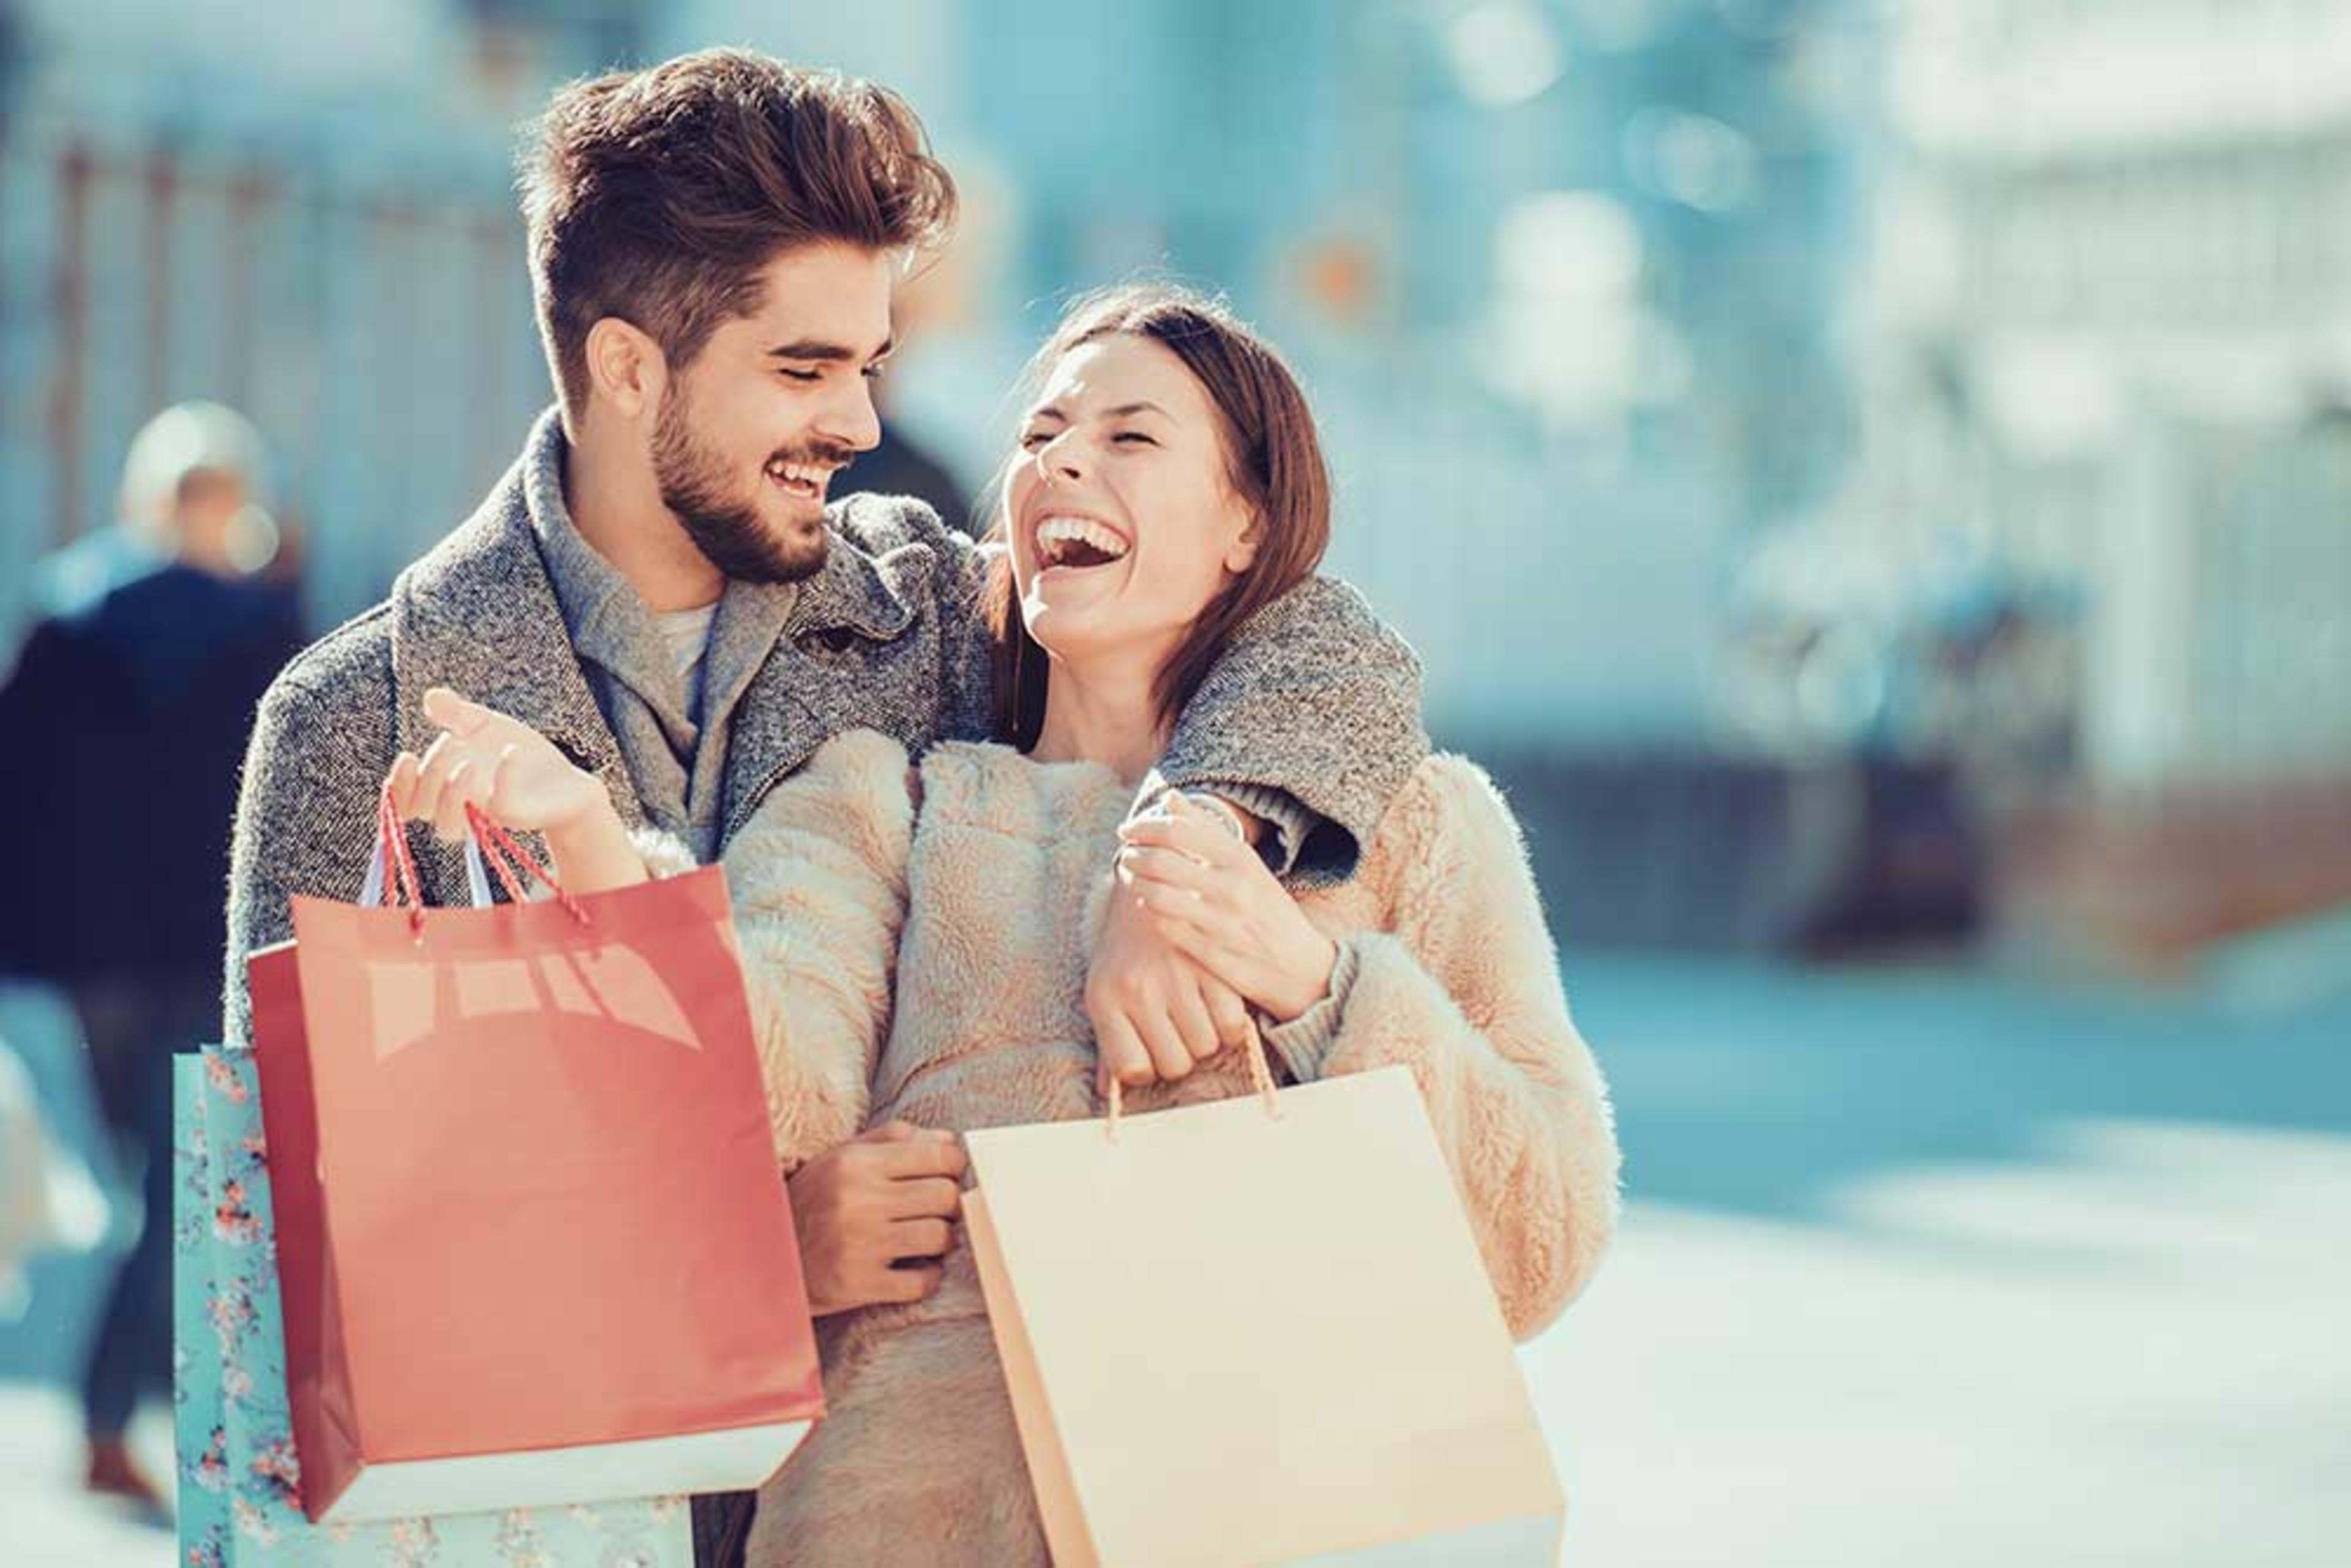 Man and woman laughing together while holding shopping bags